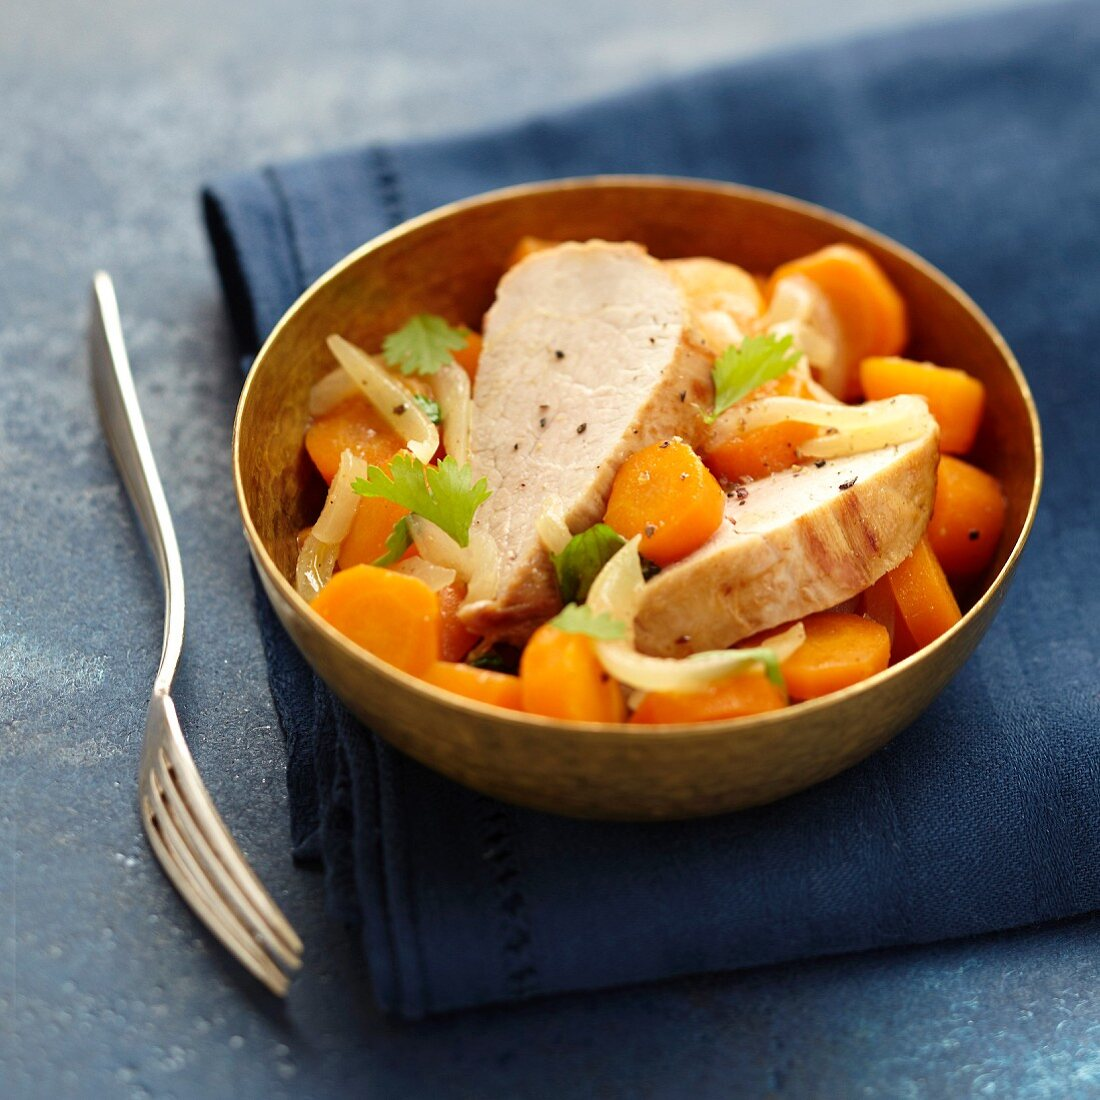 Morrocan-style pork filet mignon with carrots